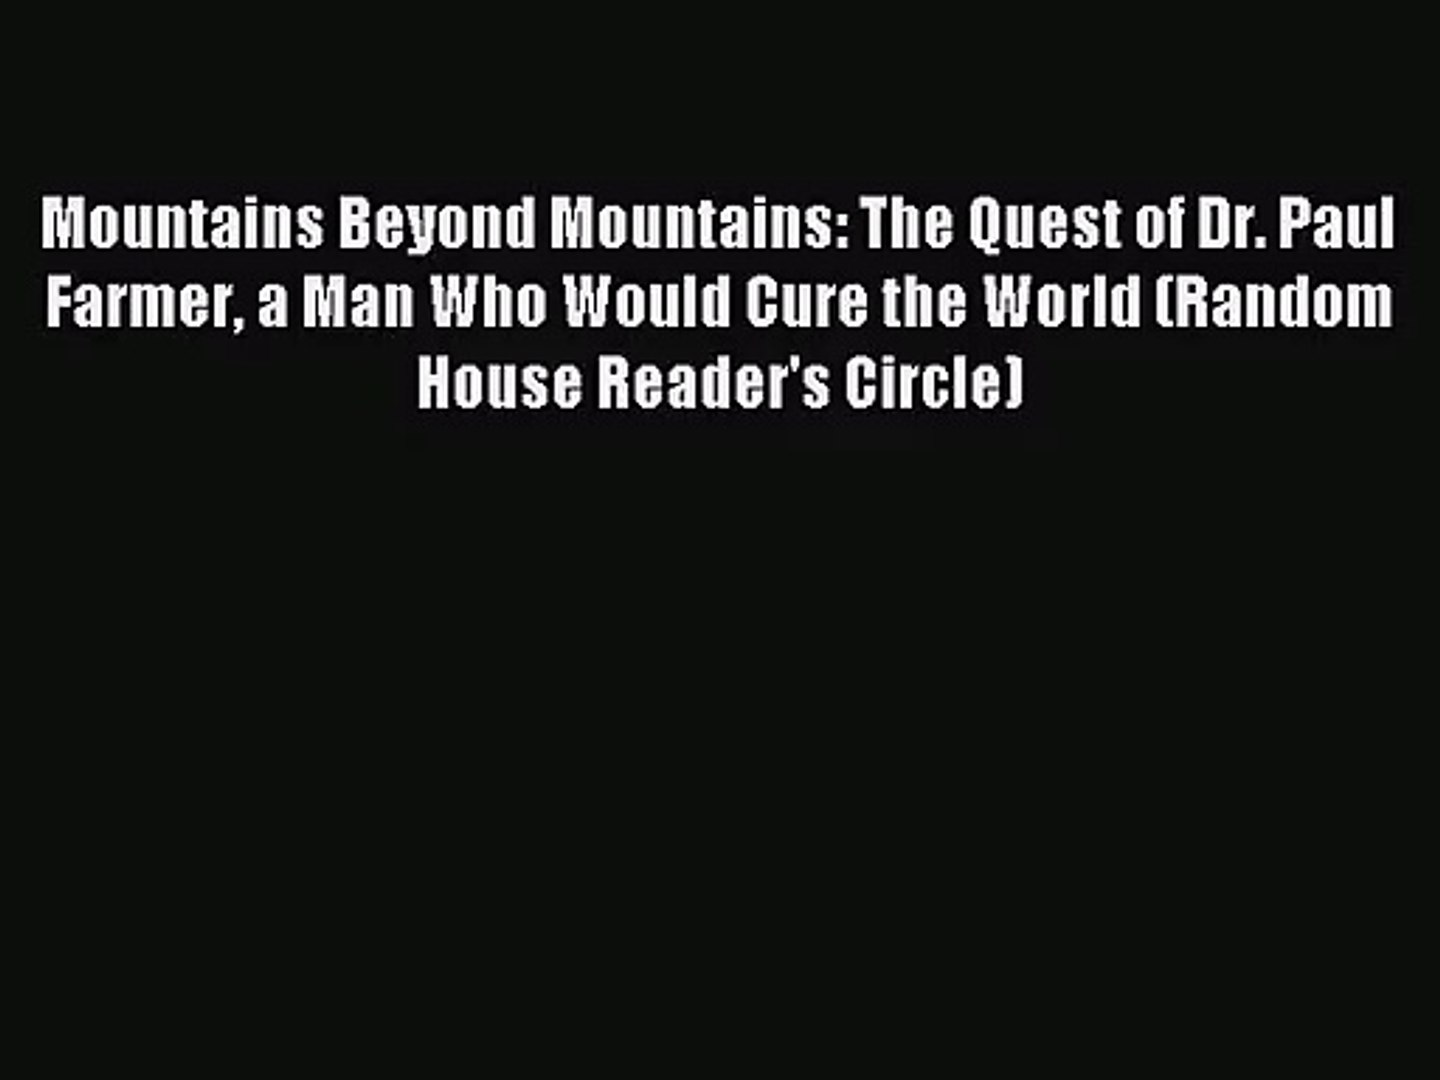 Mountains Beyond Mountains: The Quest of Dr. Paul Farmer a Man Who Would Cure the World (Random